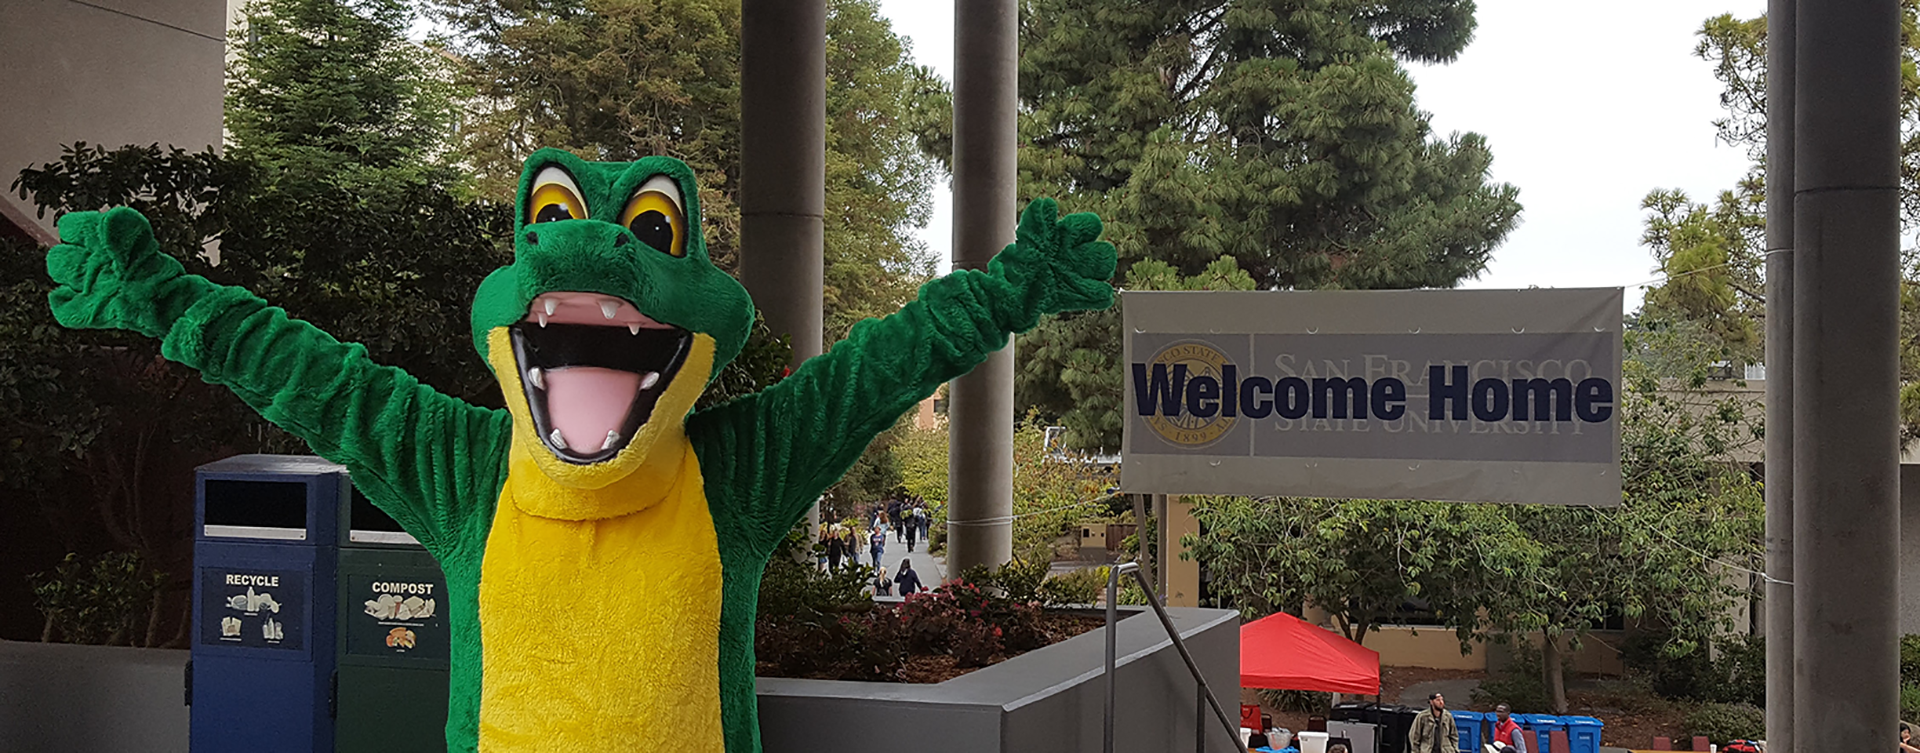 Gator mascot and welcome sign